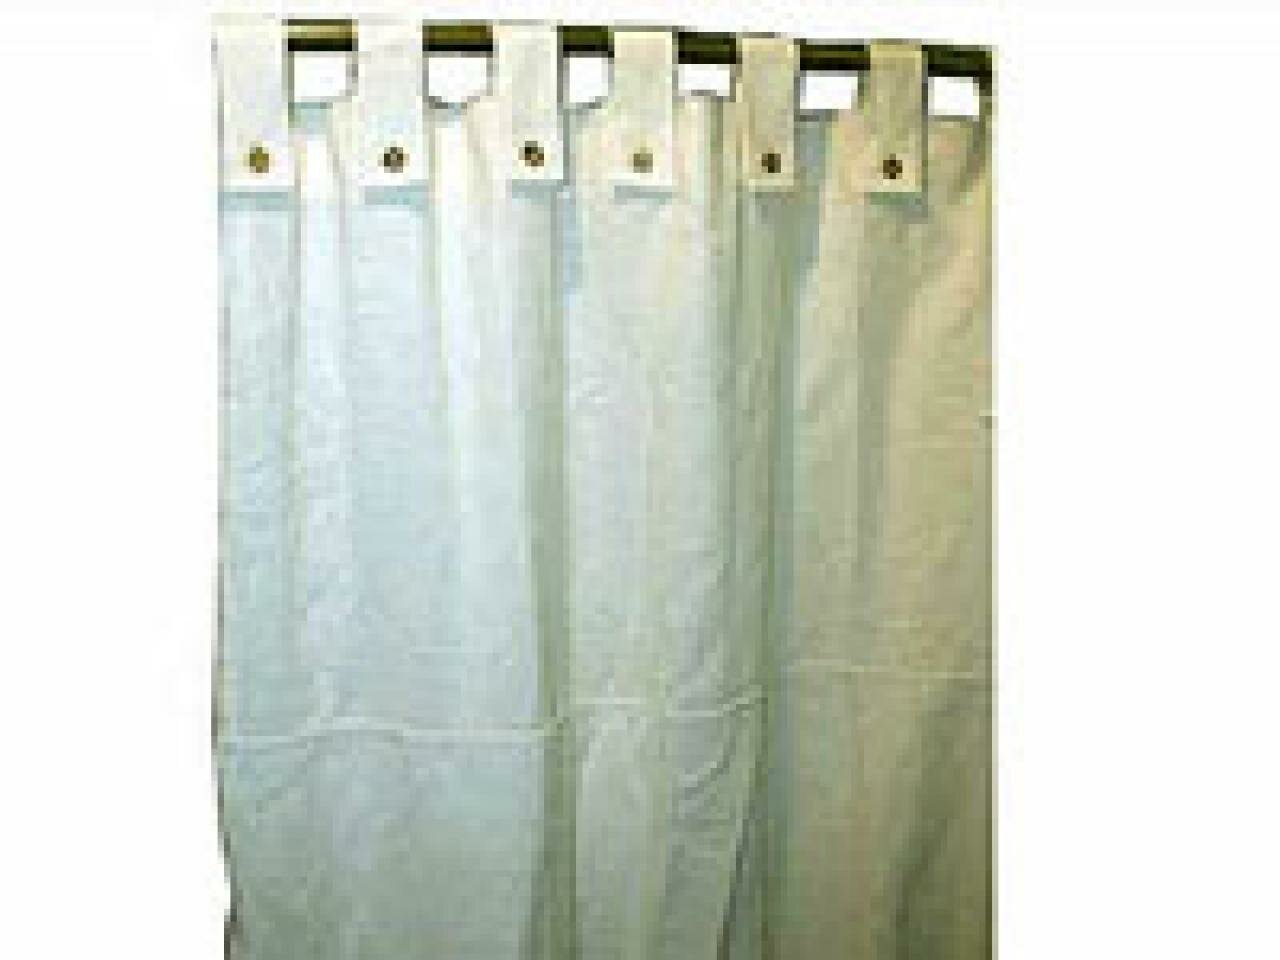 Chrome Shower Rod | Sage Shower Curtain | Restoration Hardware Shower Curtain